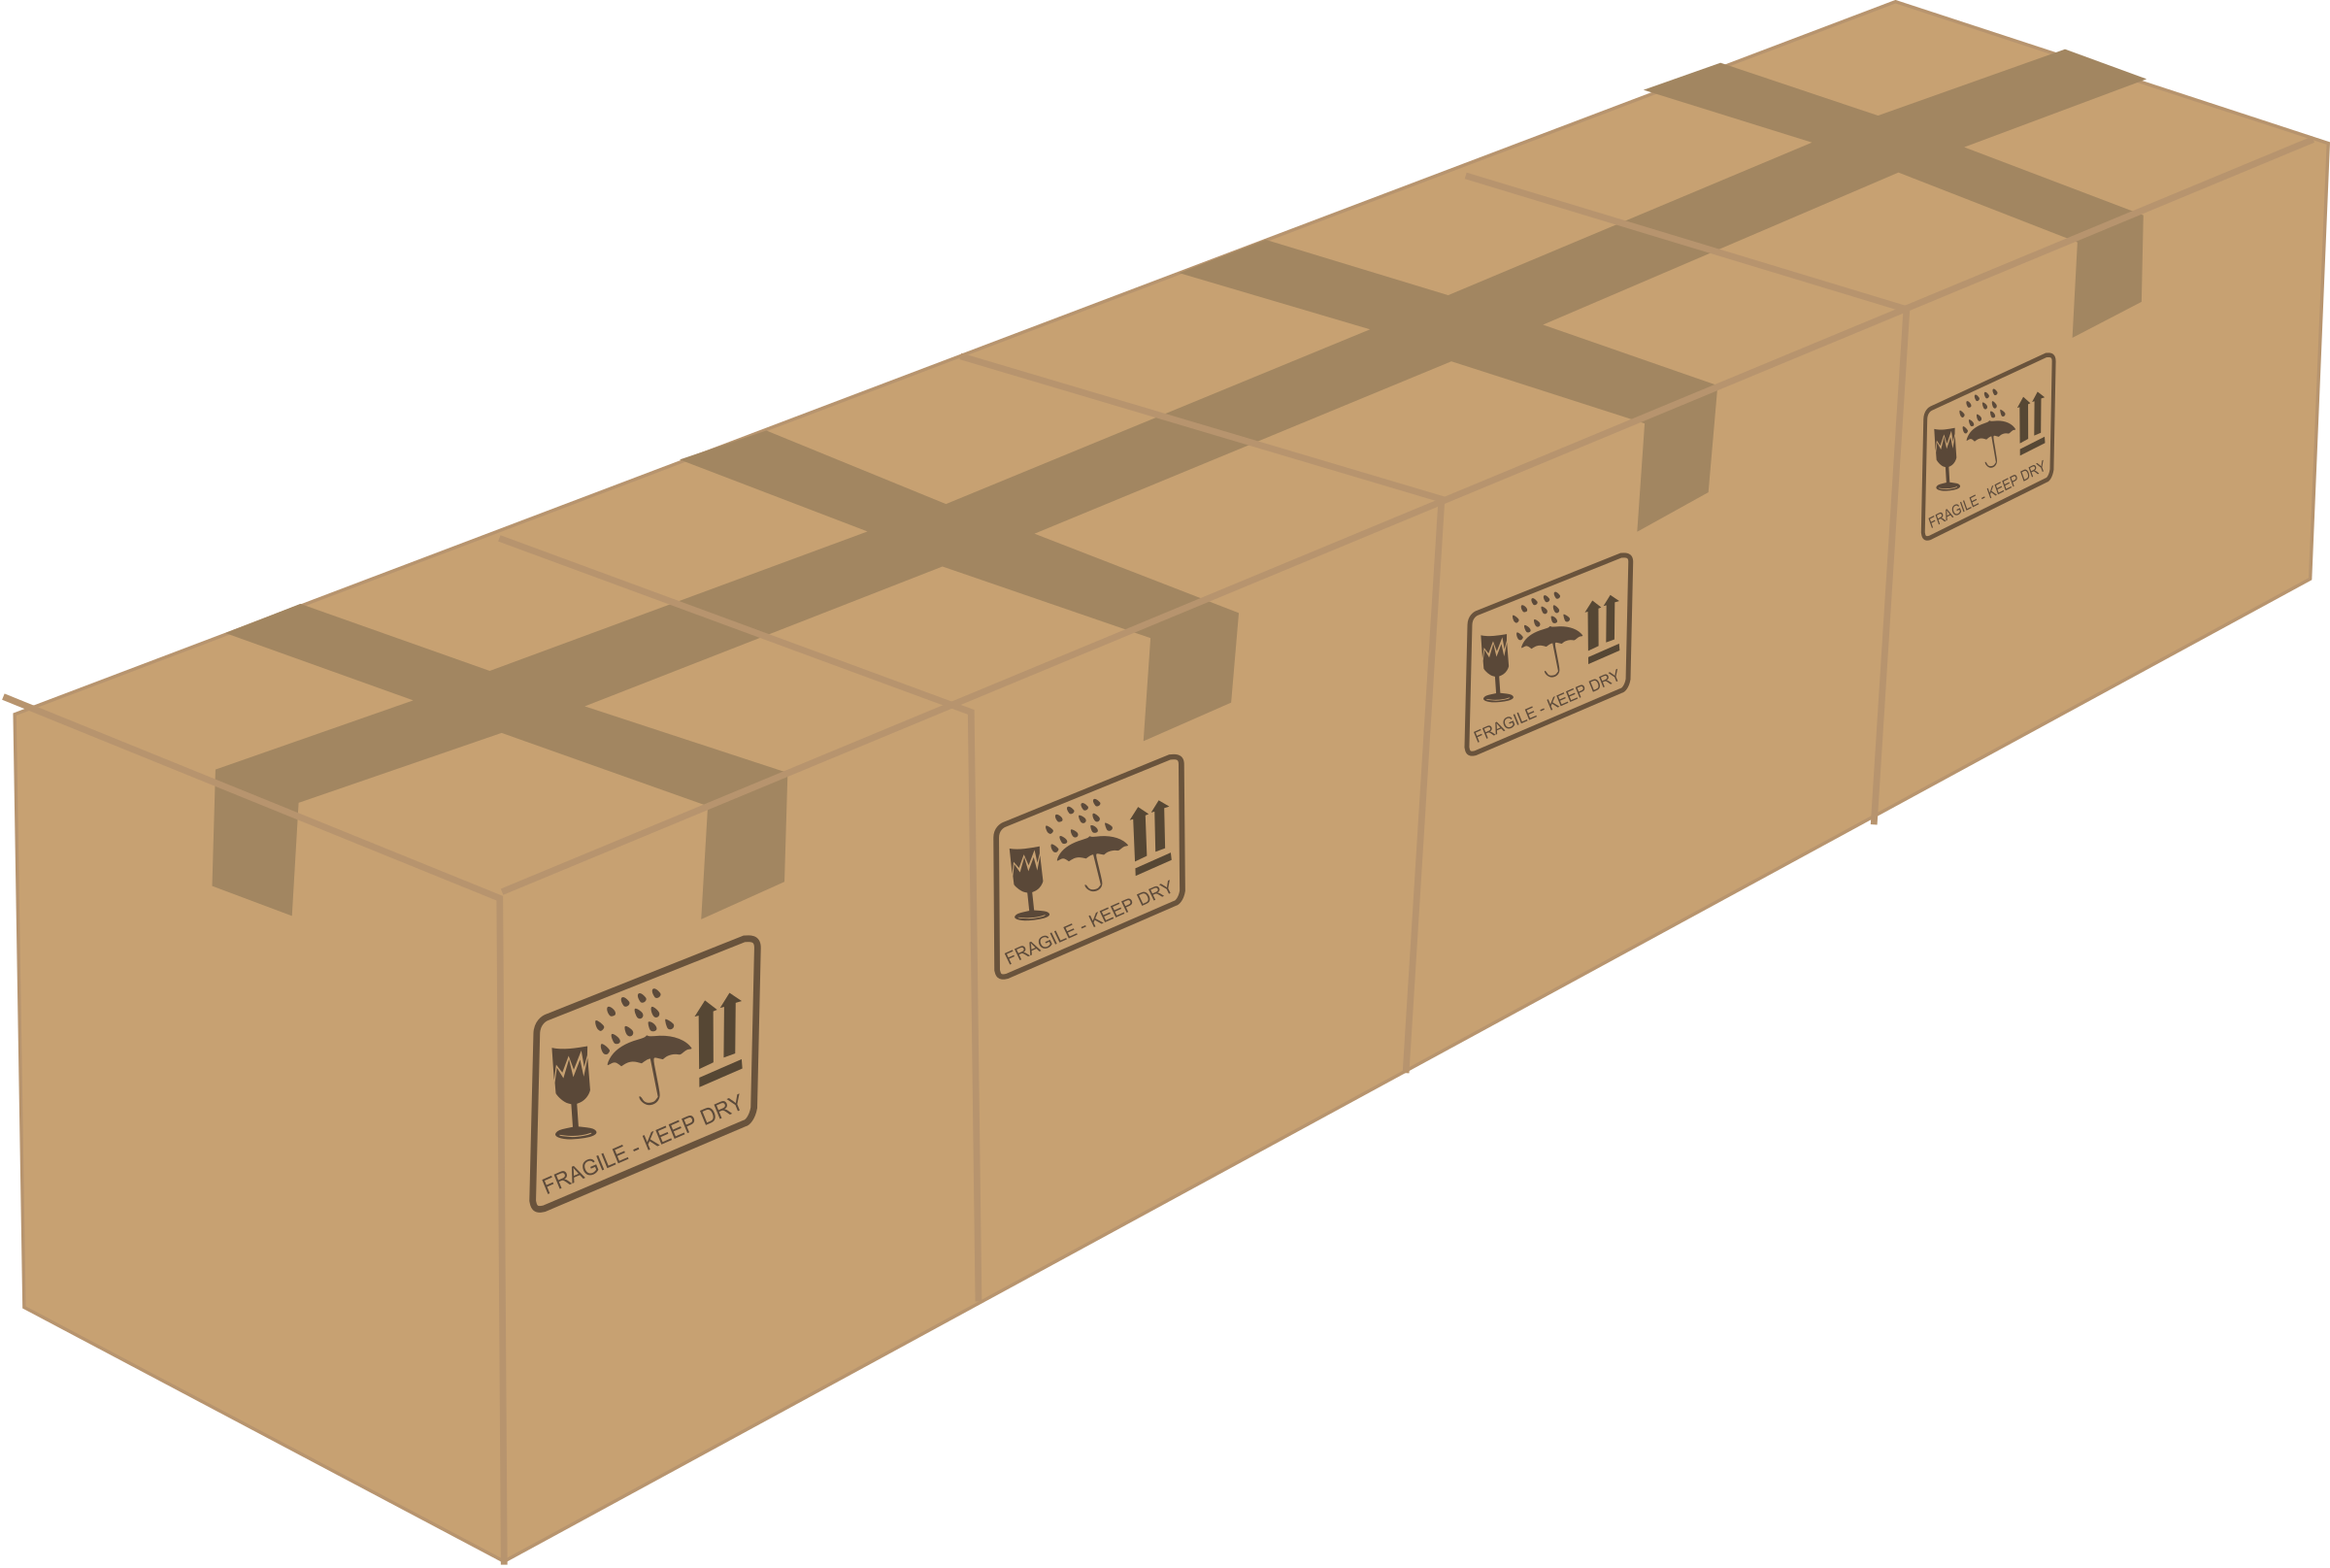 Four boxes by Rfc1394